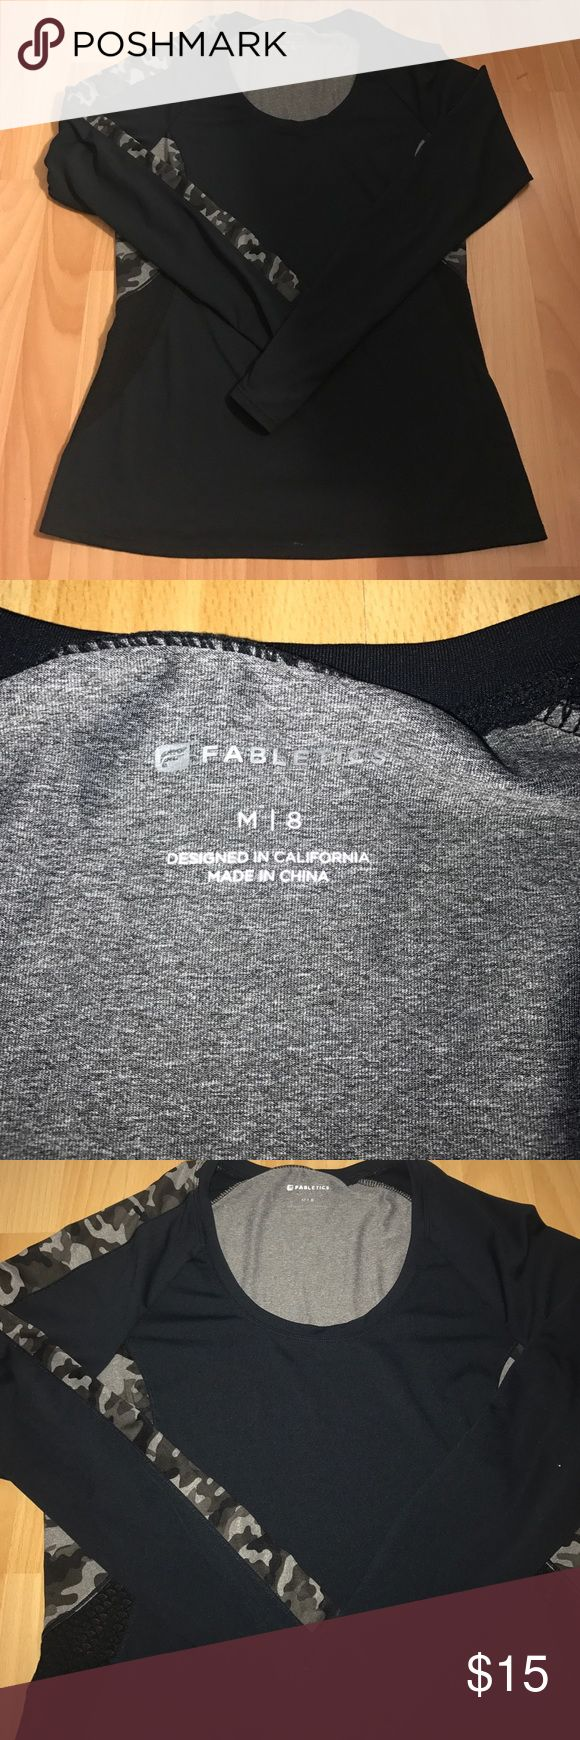 Fabletics top This black and gray camo top has camo detail down one sleeve and camo detail in the back with venting in the lower back area and is made of a wicking material Fabletics Tops Sweatshirts & Hoodies